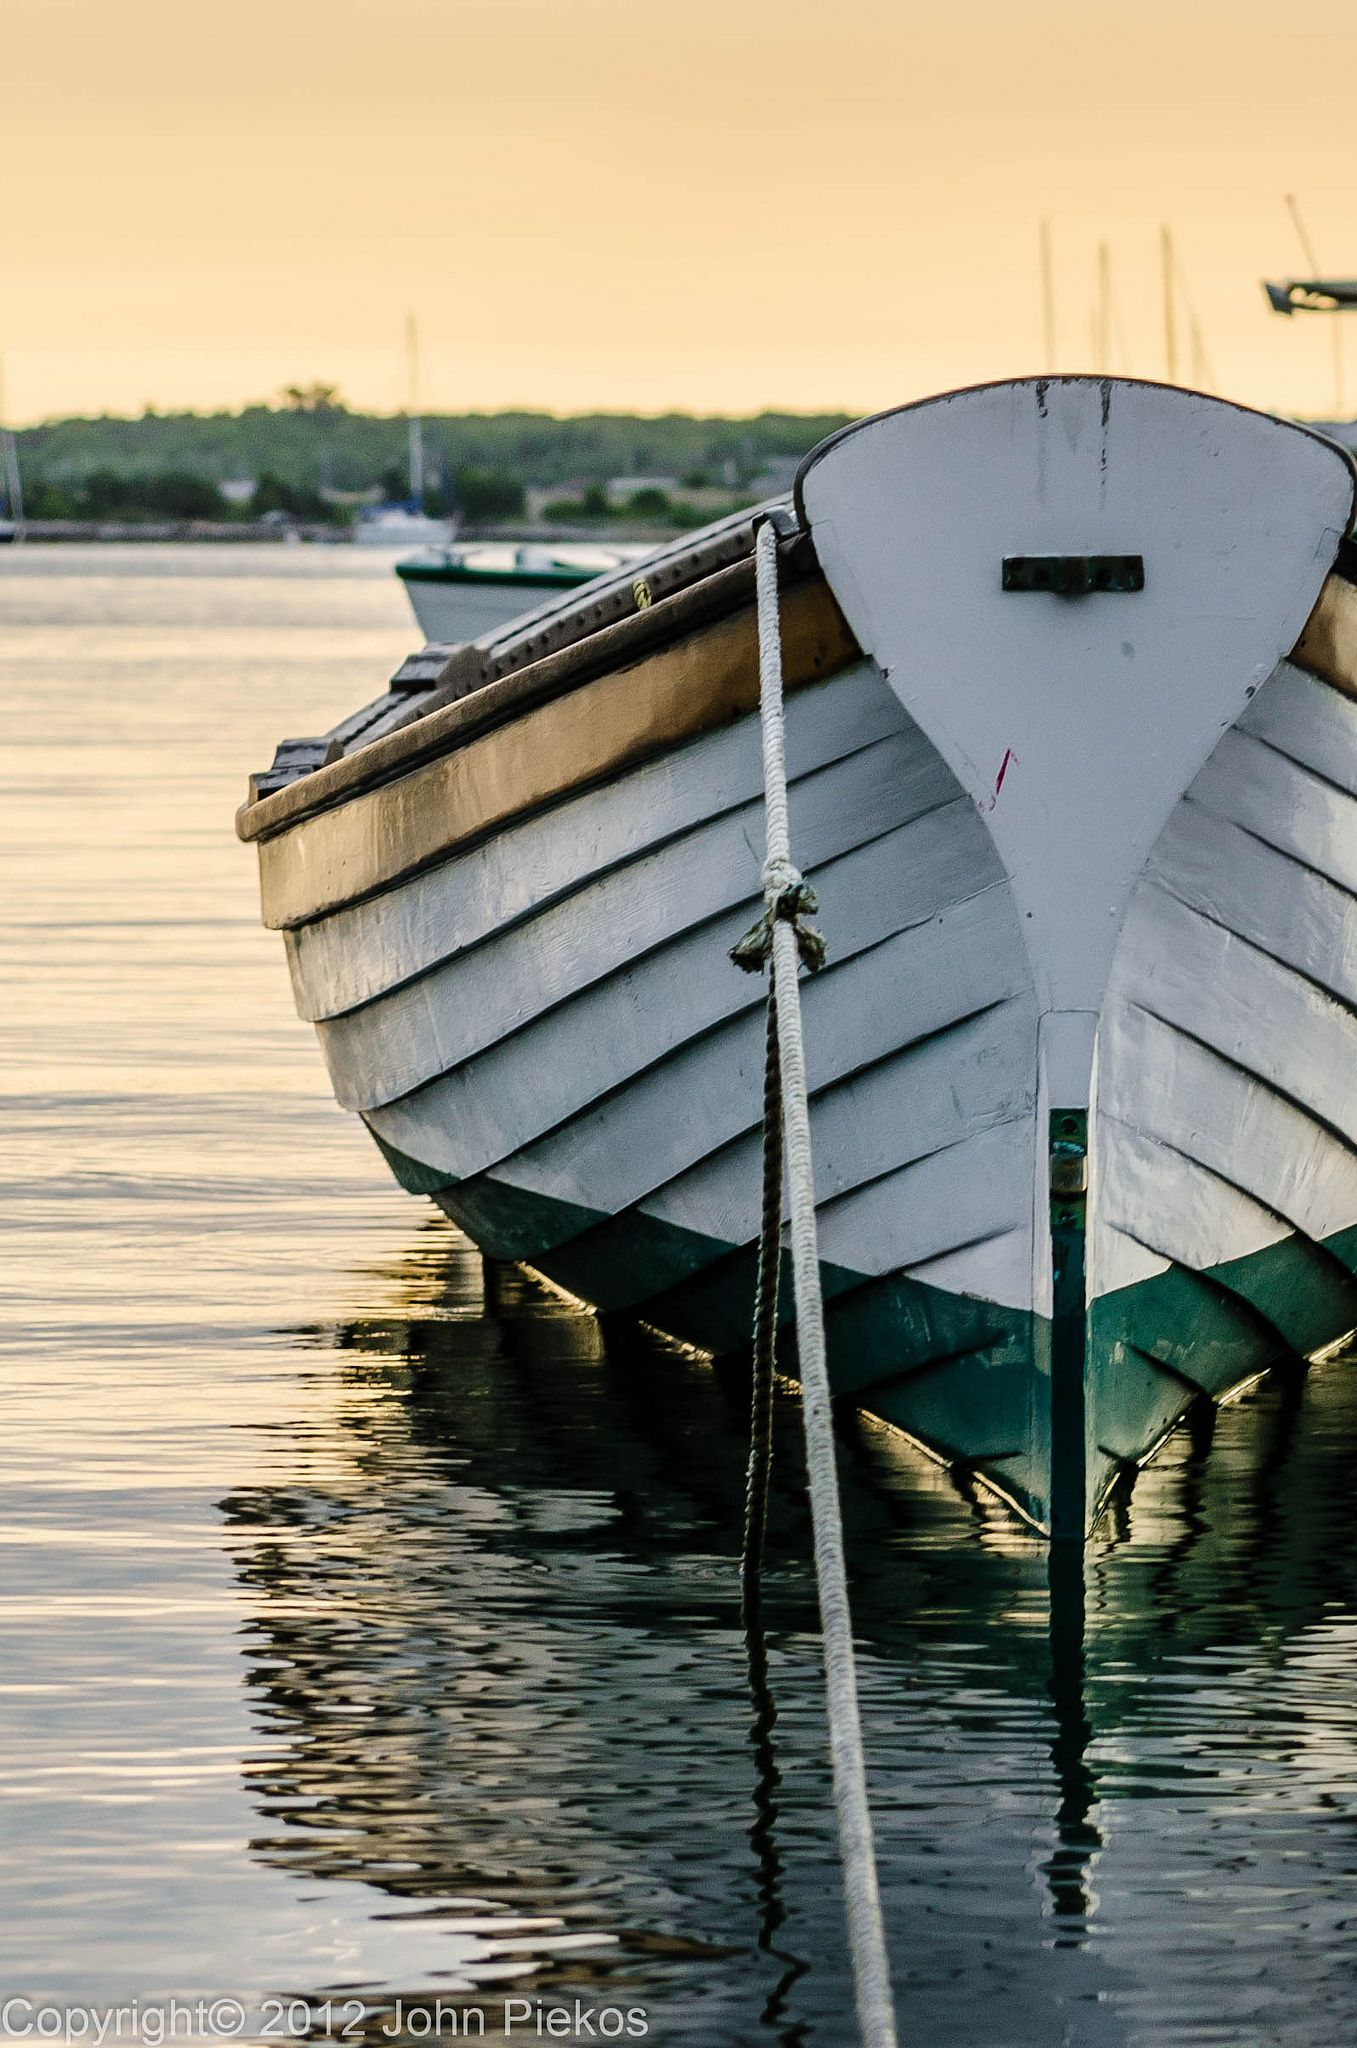 The Row Boat | One of the row boats in Vineyard Haven Harbor on Martha's Vineyard.  Most mornings a group of people take this boat out as some sort of group or team paddling workout.